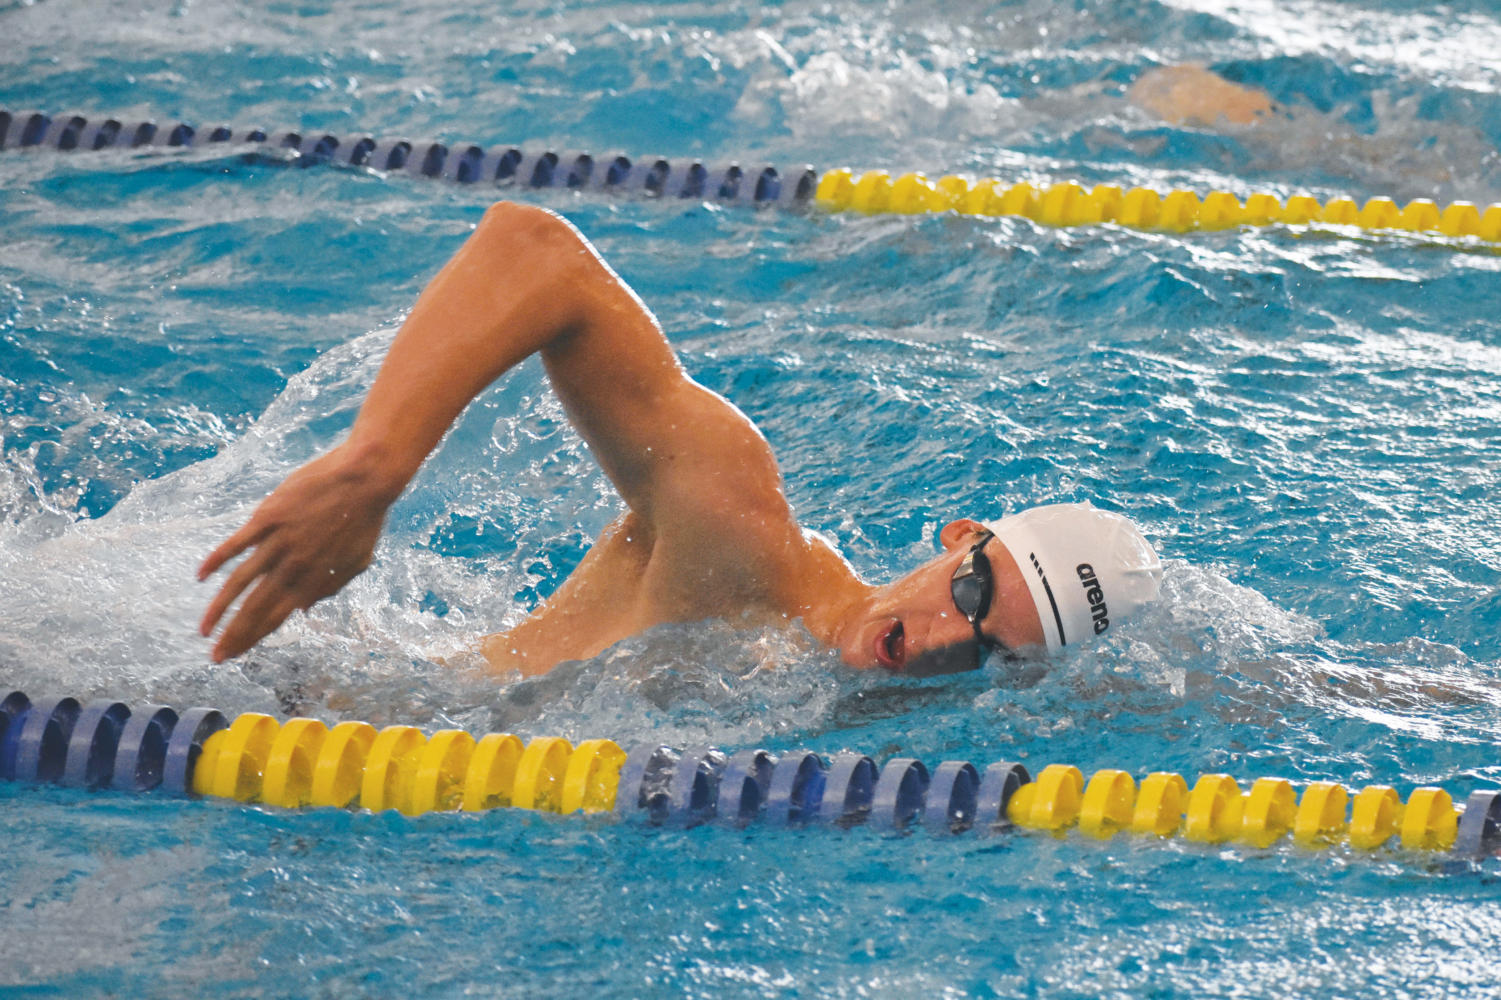 FREESTYLIN': Senior Wyatt Davis works on his freestyle. Davis won a gold medal in the 400-meter mixed medley relay.